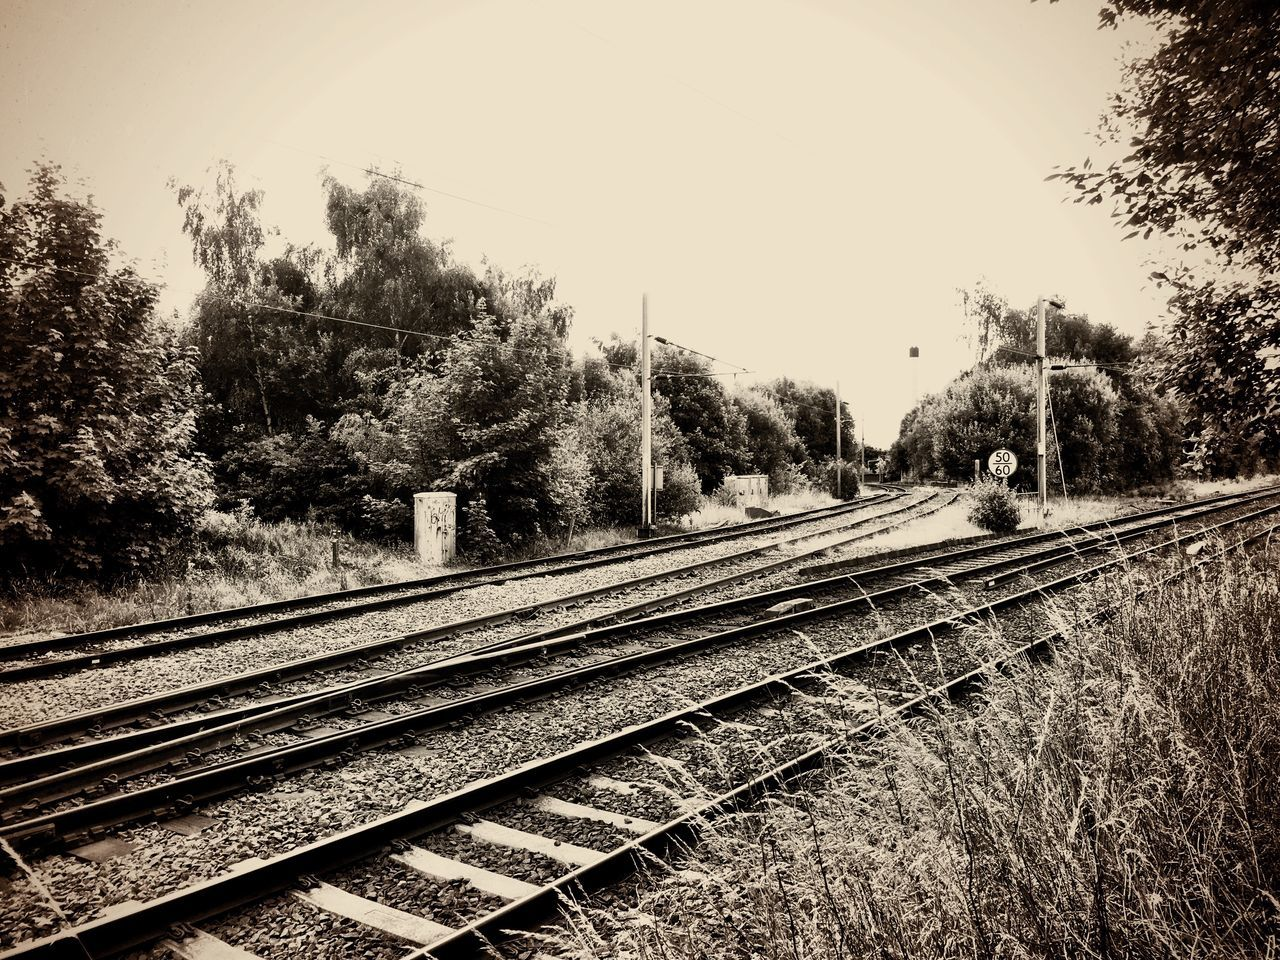 #railway #train #track #fork #split #found #while #out #and #about #in #wolverhampton taken on my #iphone6splus by @jg.photography.official Railway Train Train Tracks Fork Split Wolverhampton IPhoneography